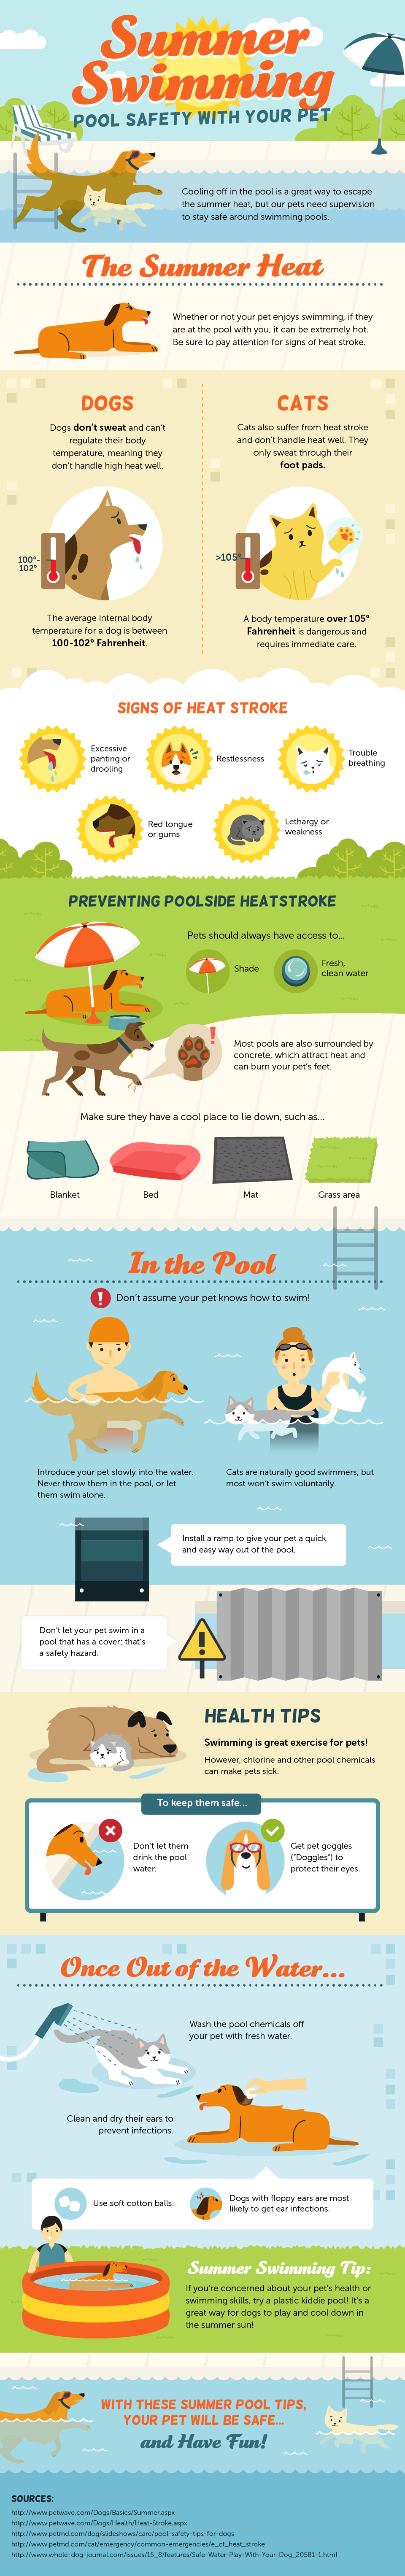 Summer pool safety tips for pets